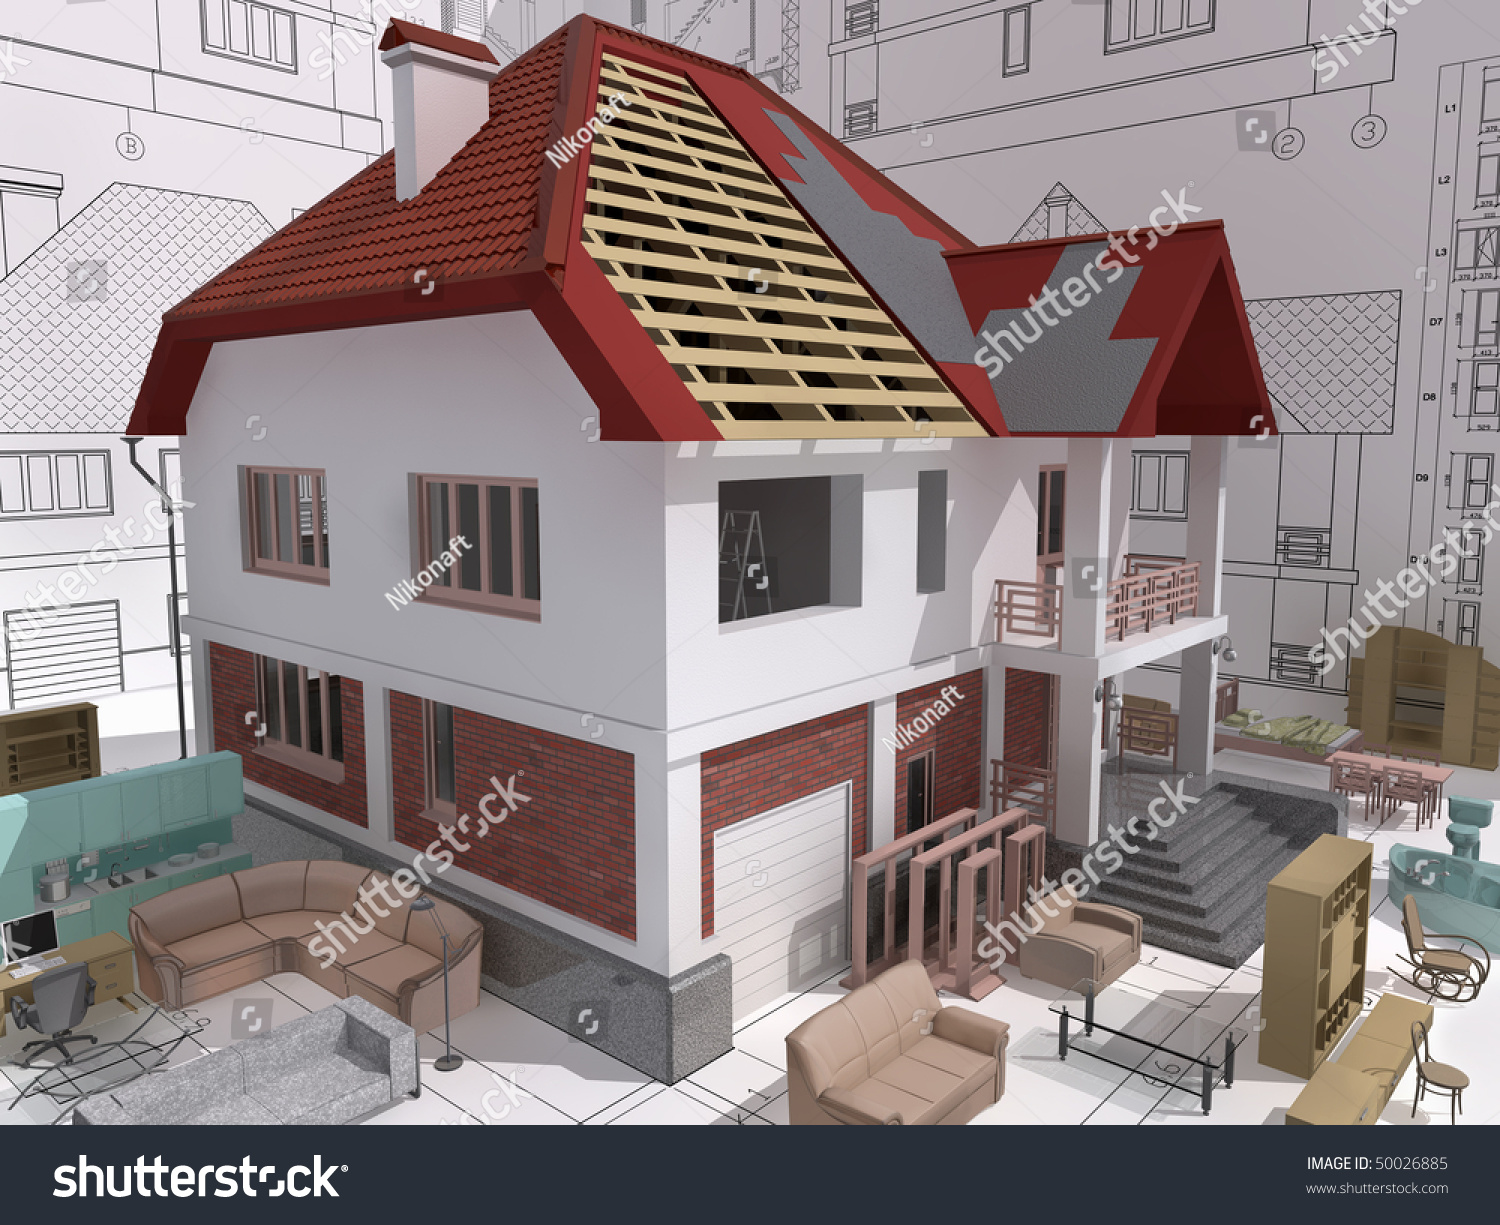 3d isometric view of the residential house during building